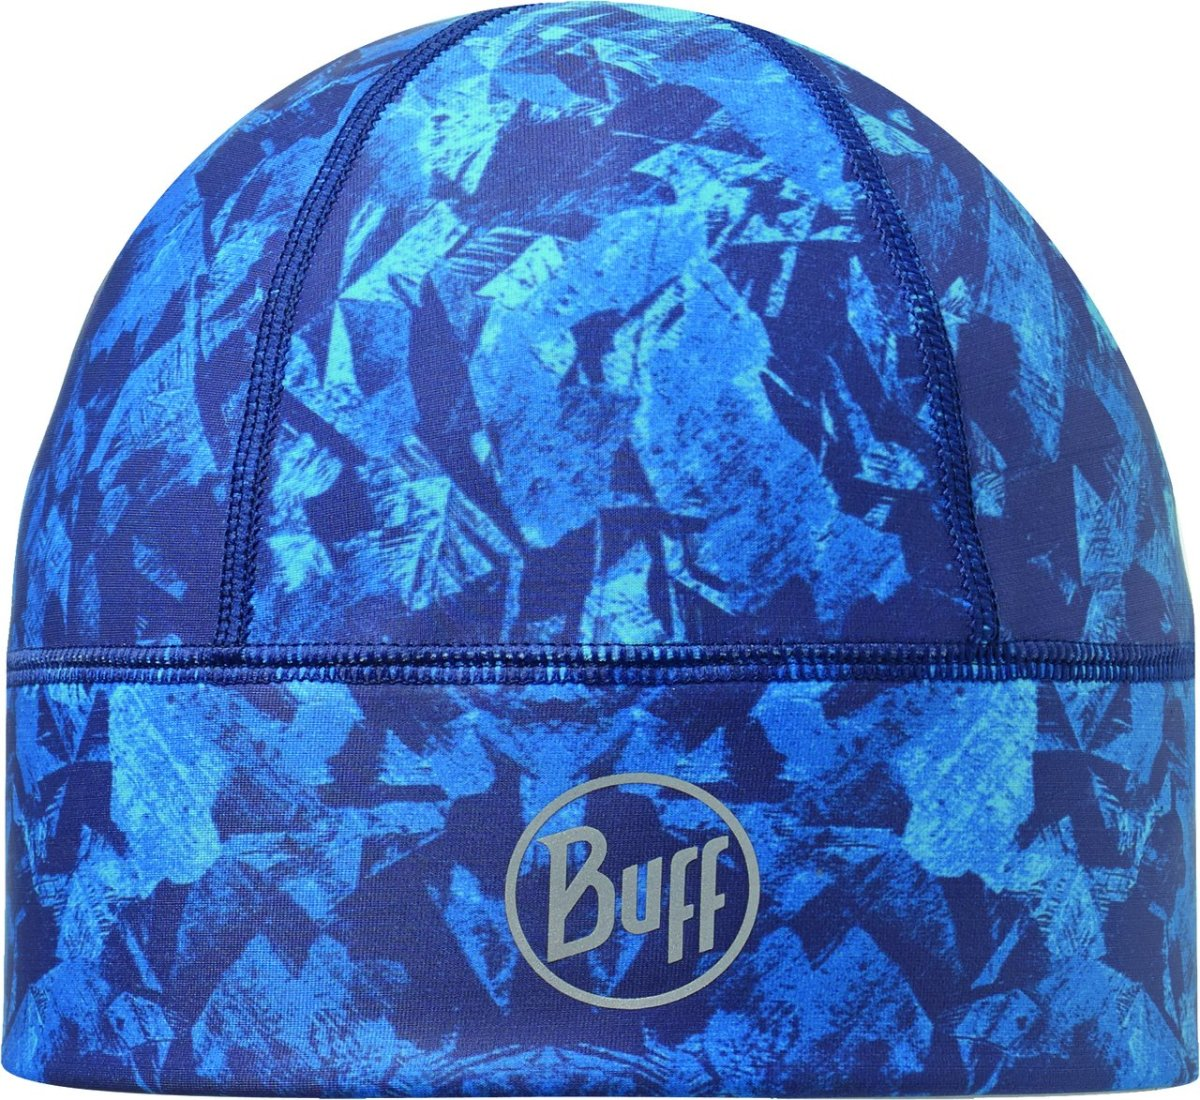 Шапка Buff Ketten Tech Hat blue erosion blue BU 111211.707.10.00